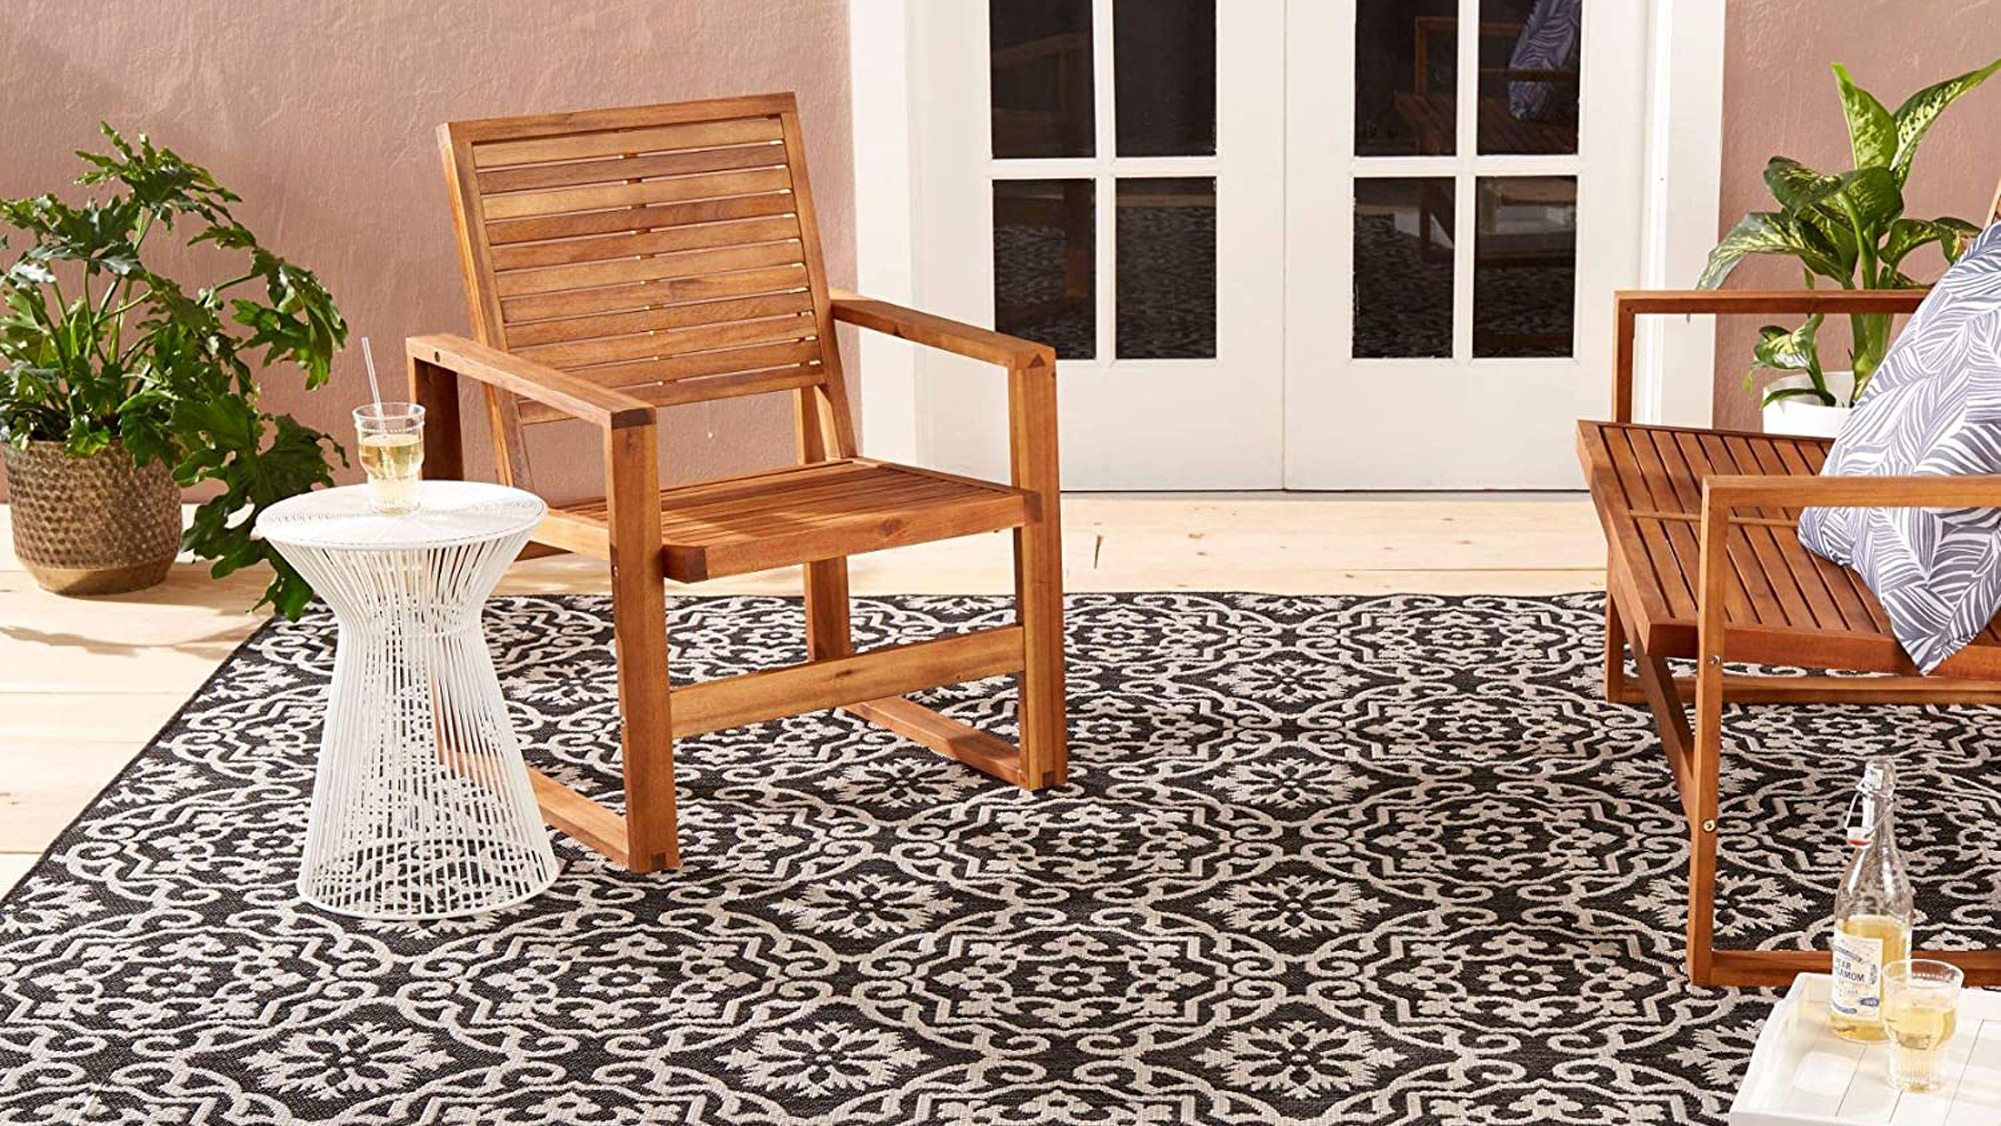 9 best outdoor rugs for 2021 according